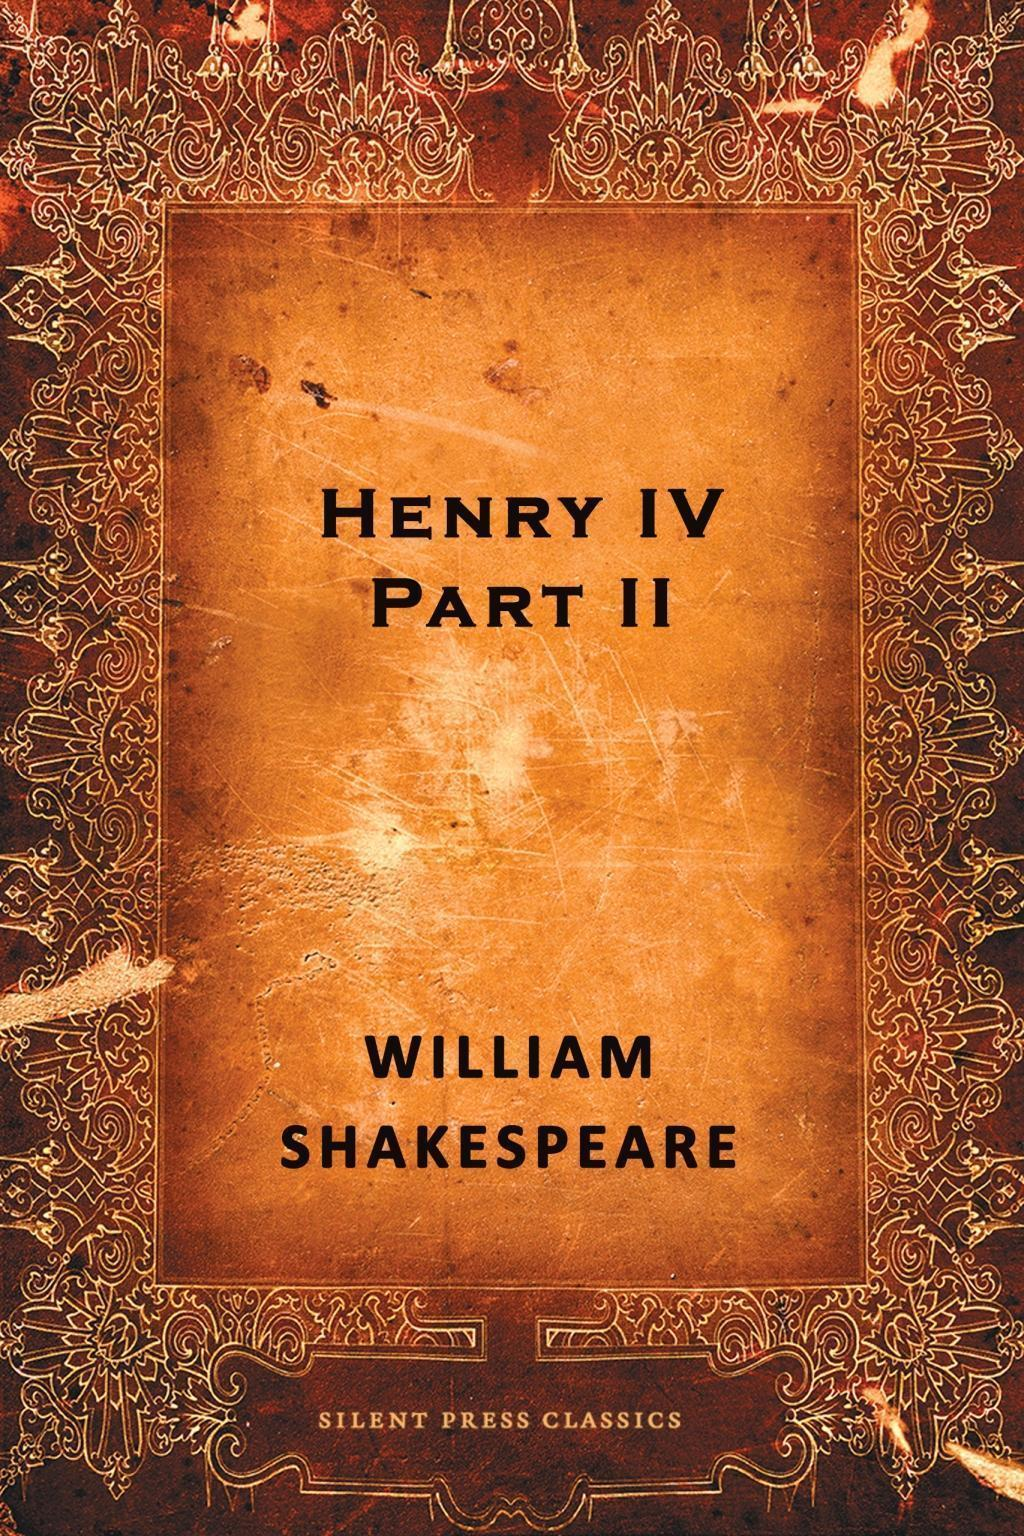 Henry IV, Part II